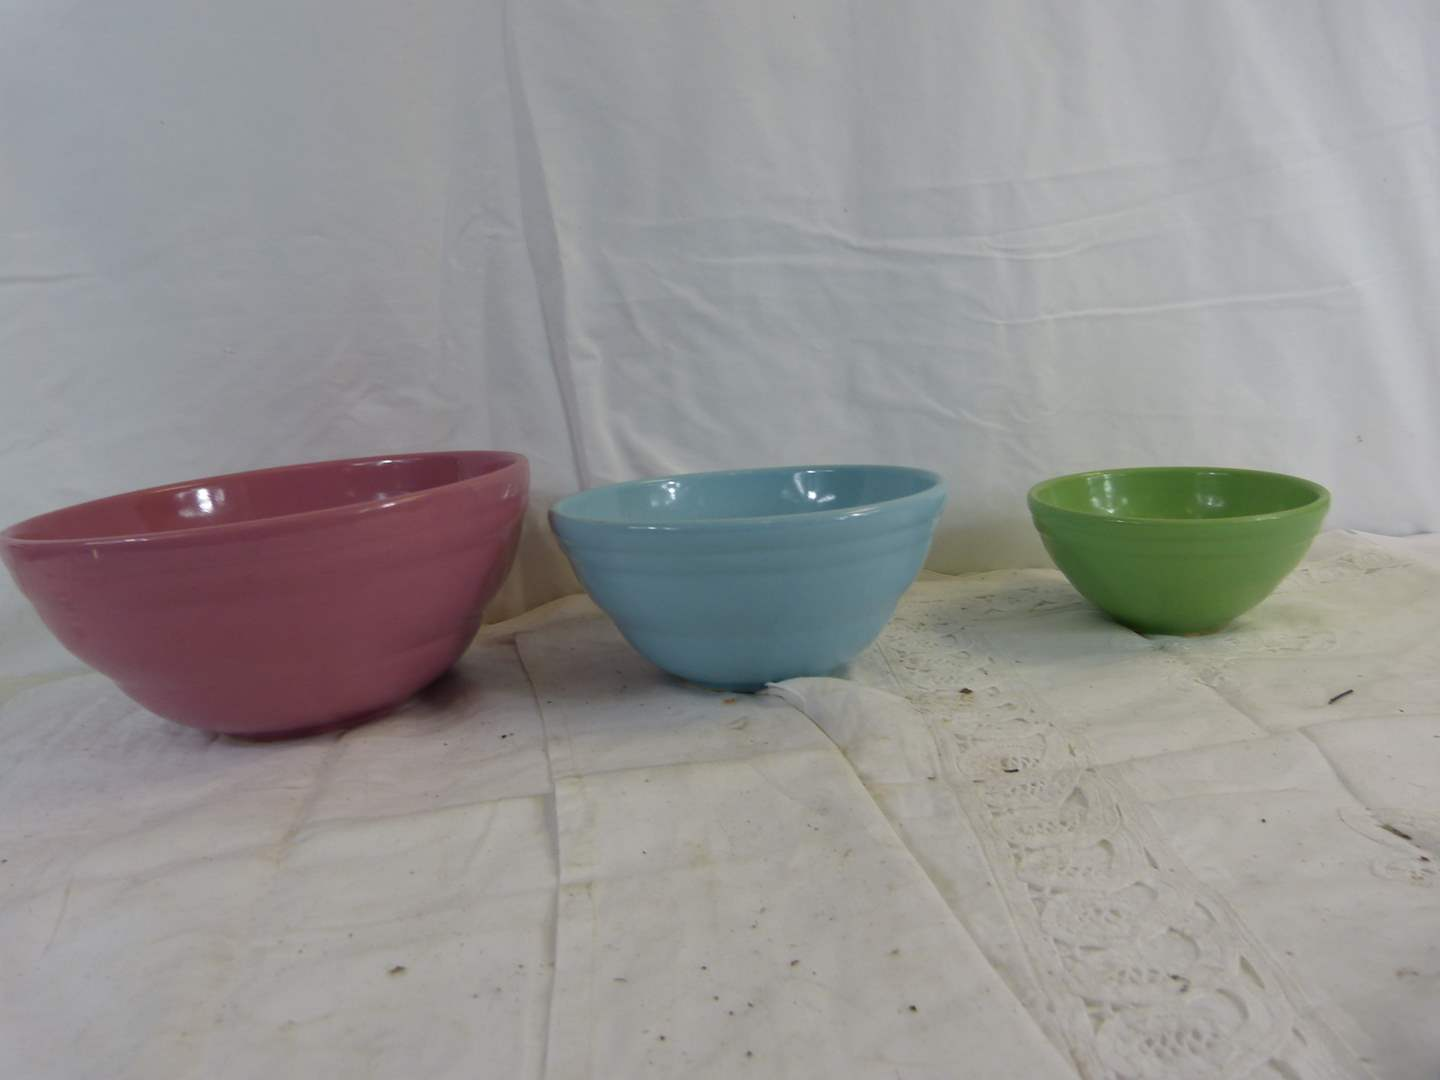 Lot # 217 3 Mulit-color mixing bowls in excellent condition STACKING (main image)